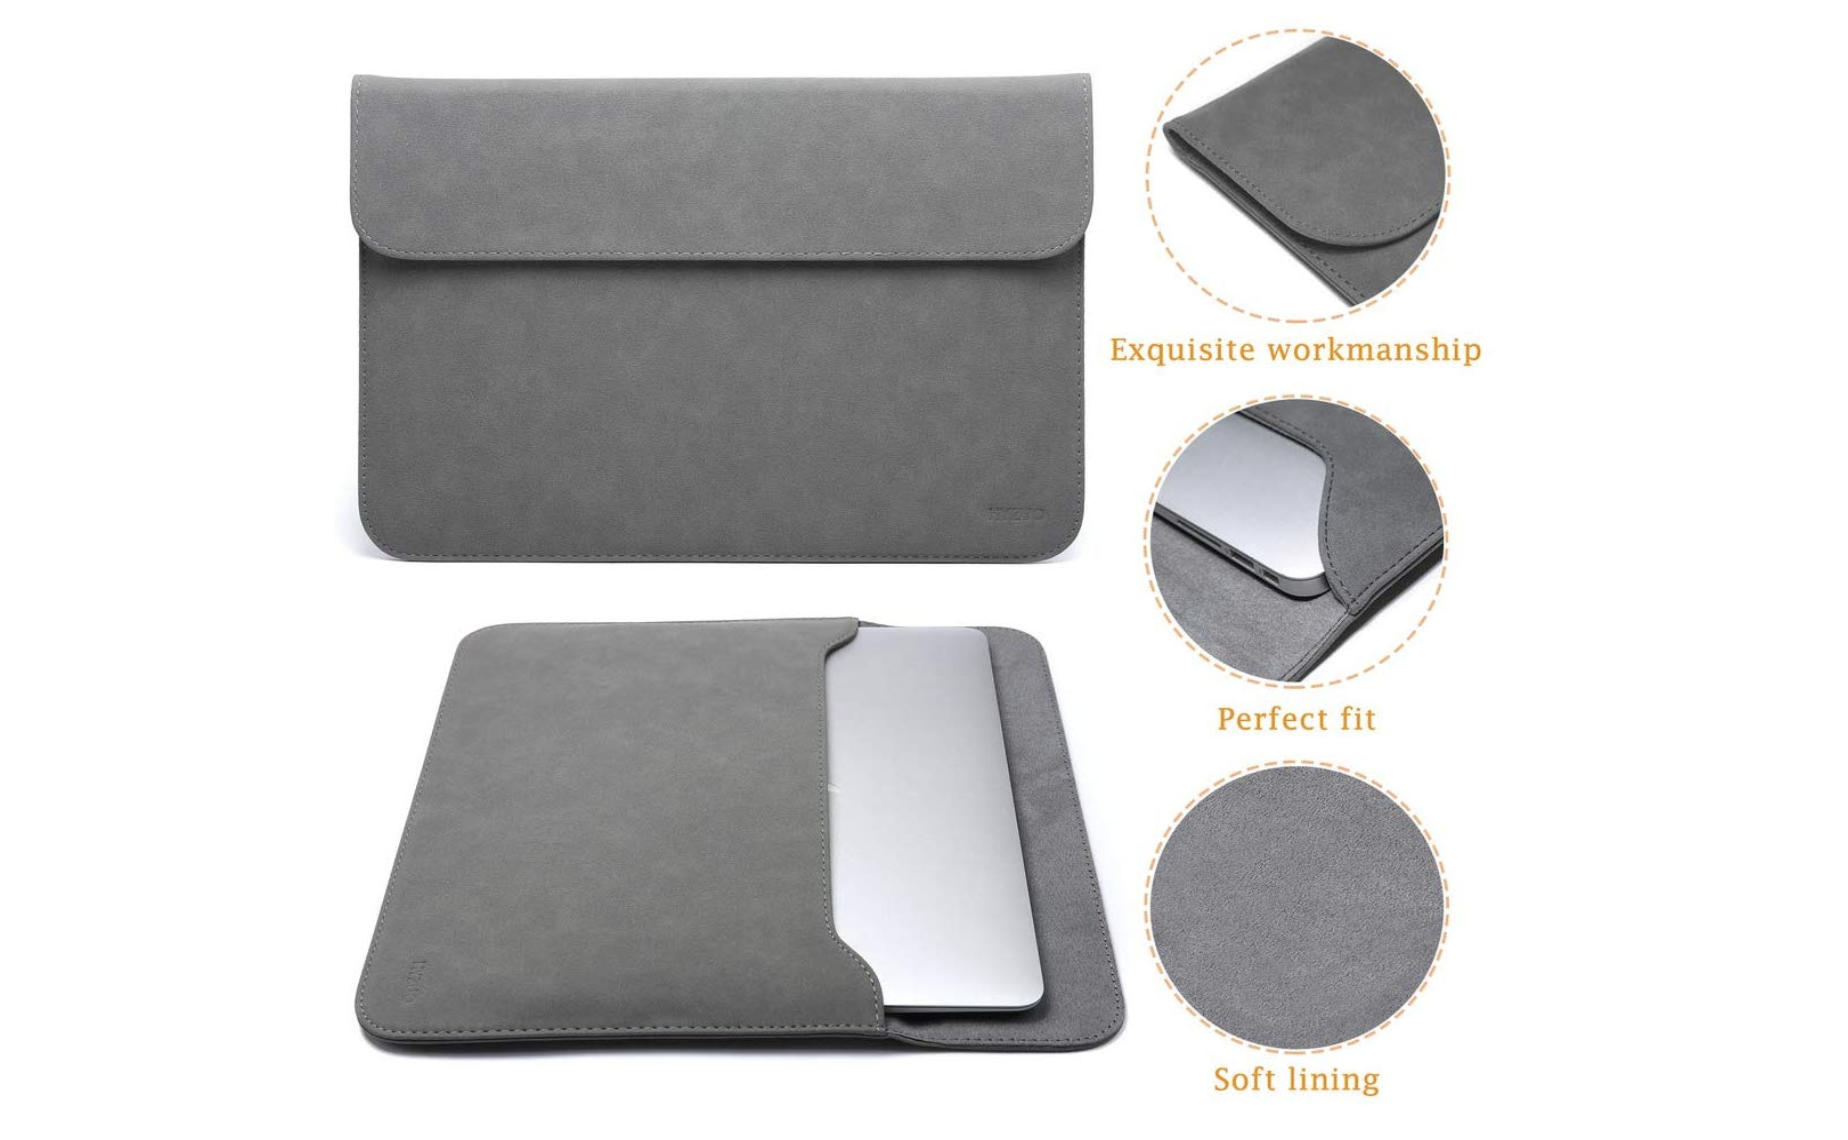 Top 10 Best Portable Laptop Sleeves of 2021 Review